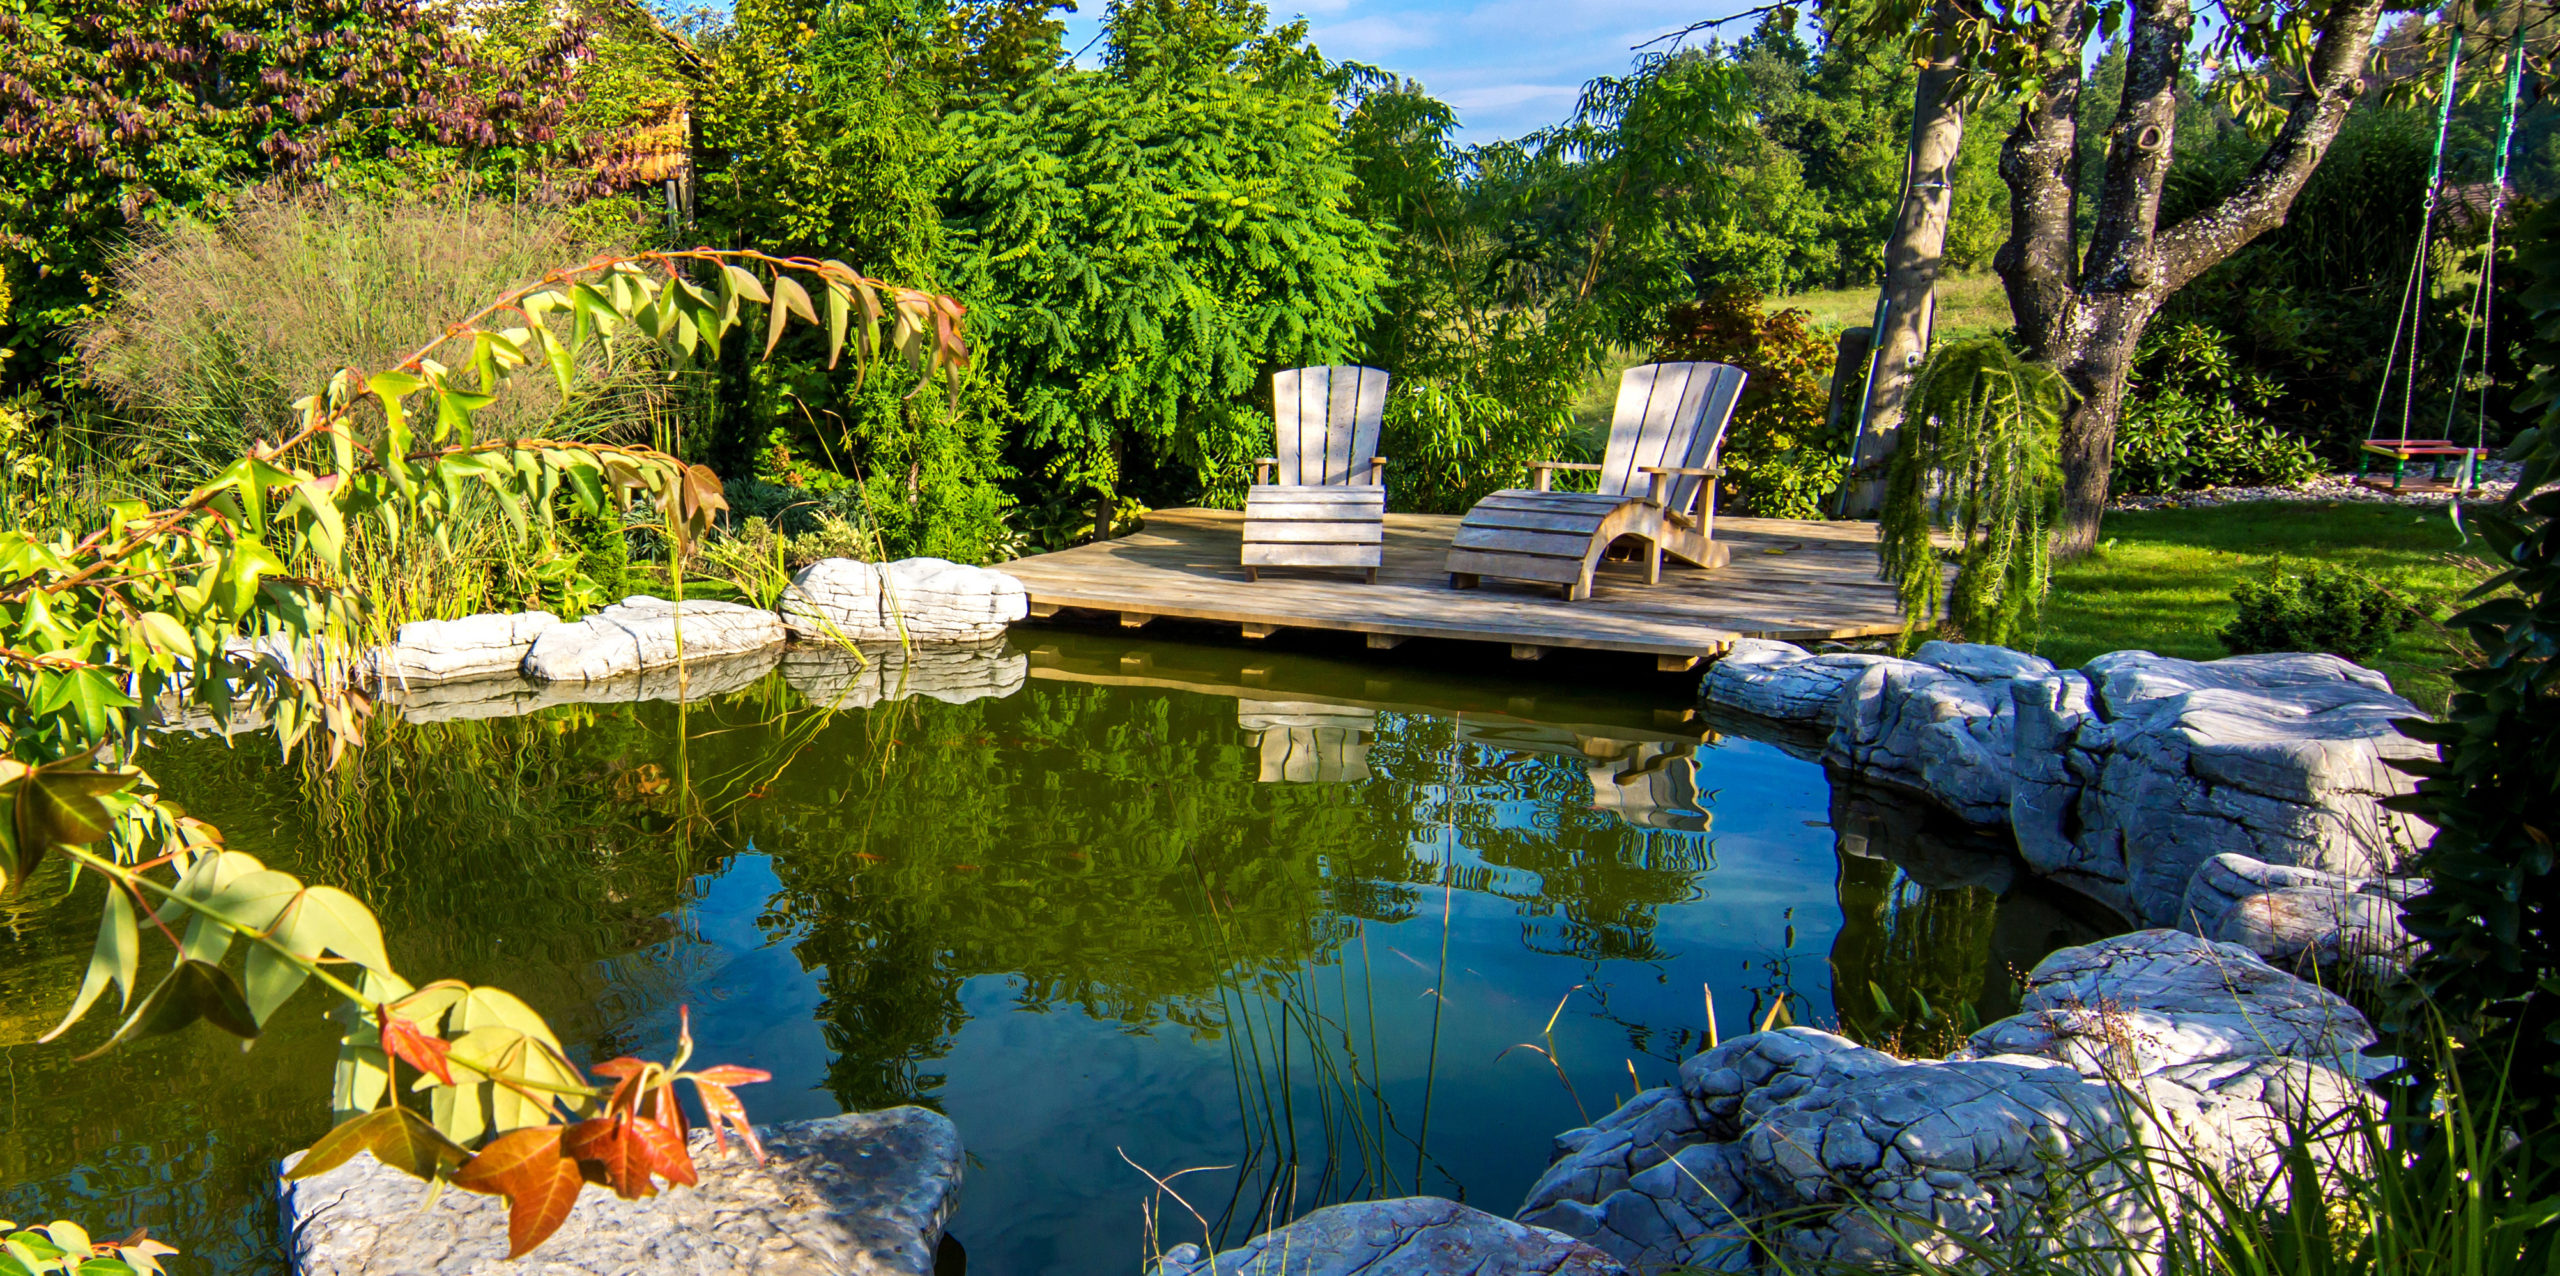 Clean Pond with Water Treatment